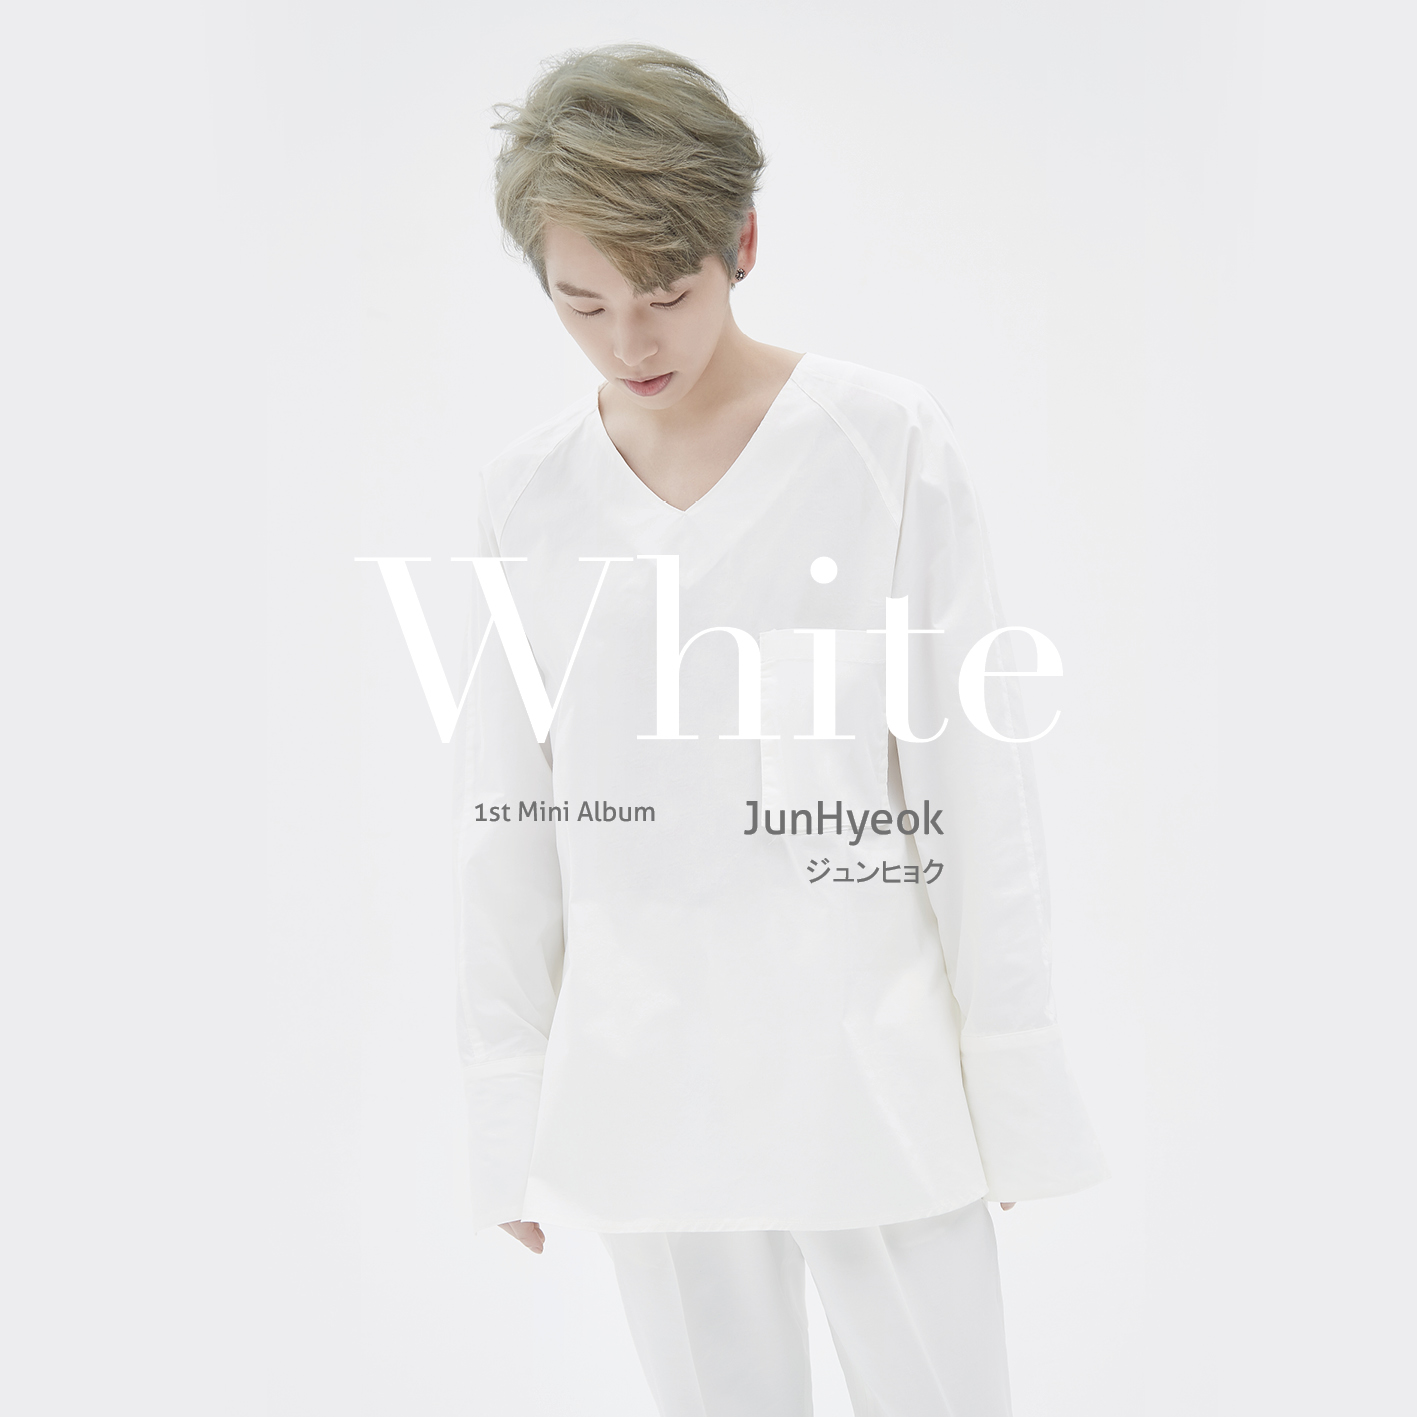 JunHyeok 1st Mini Album 「White」 5/31 発売決定‼